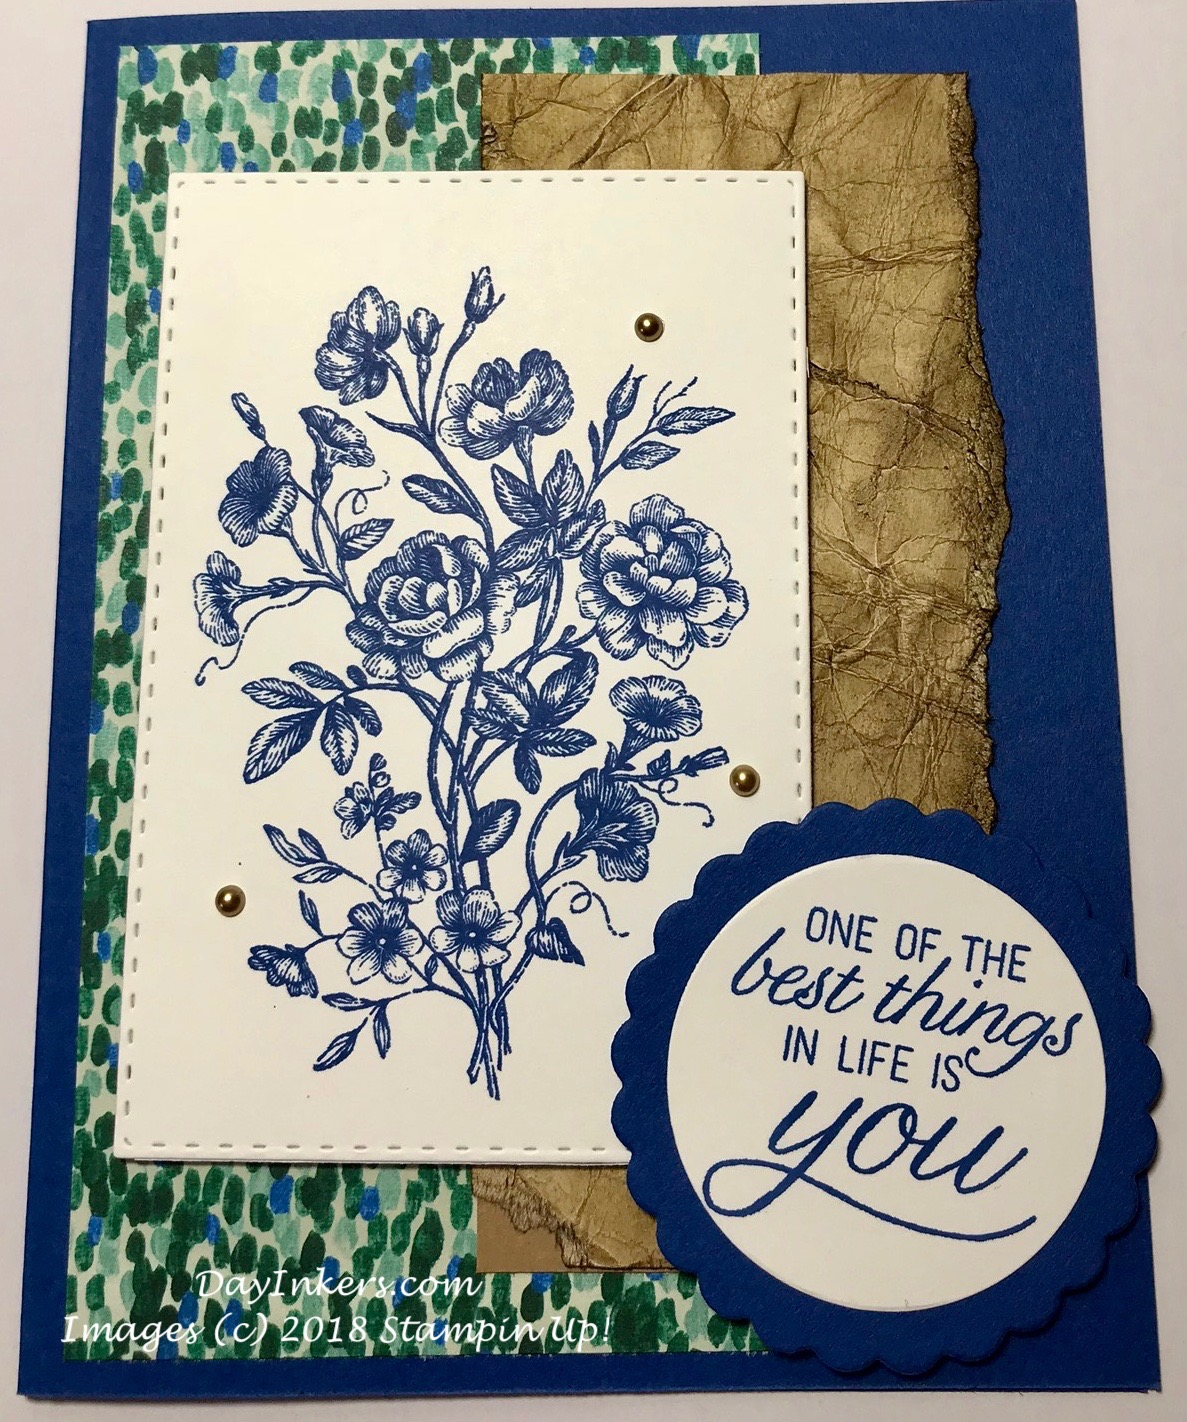 Stampin Up DSP and distressed cardstock